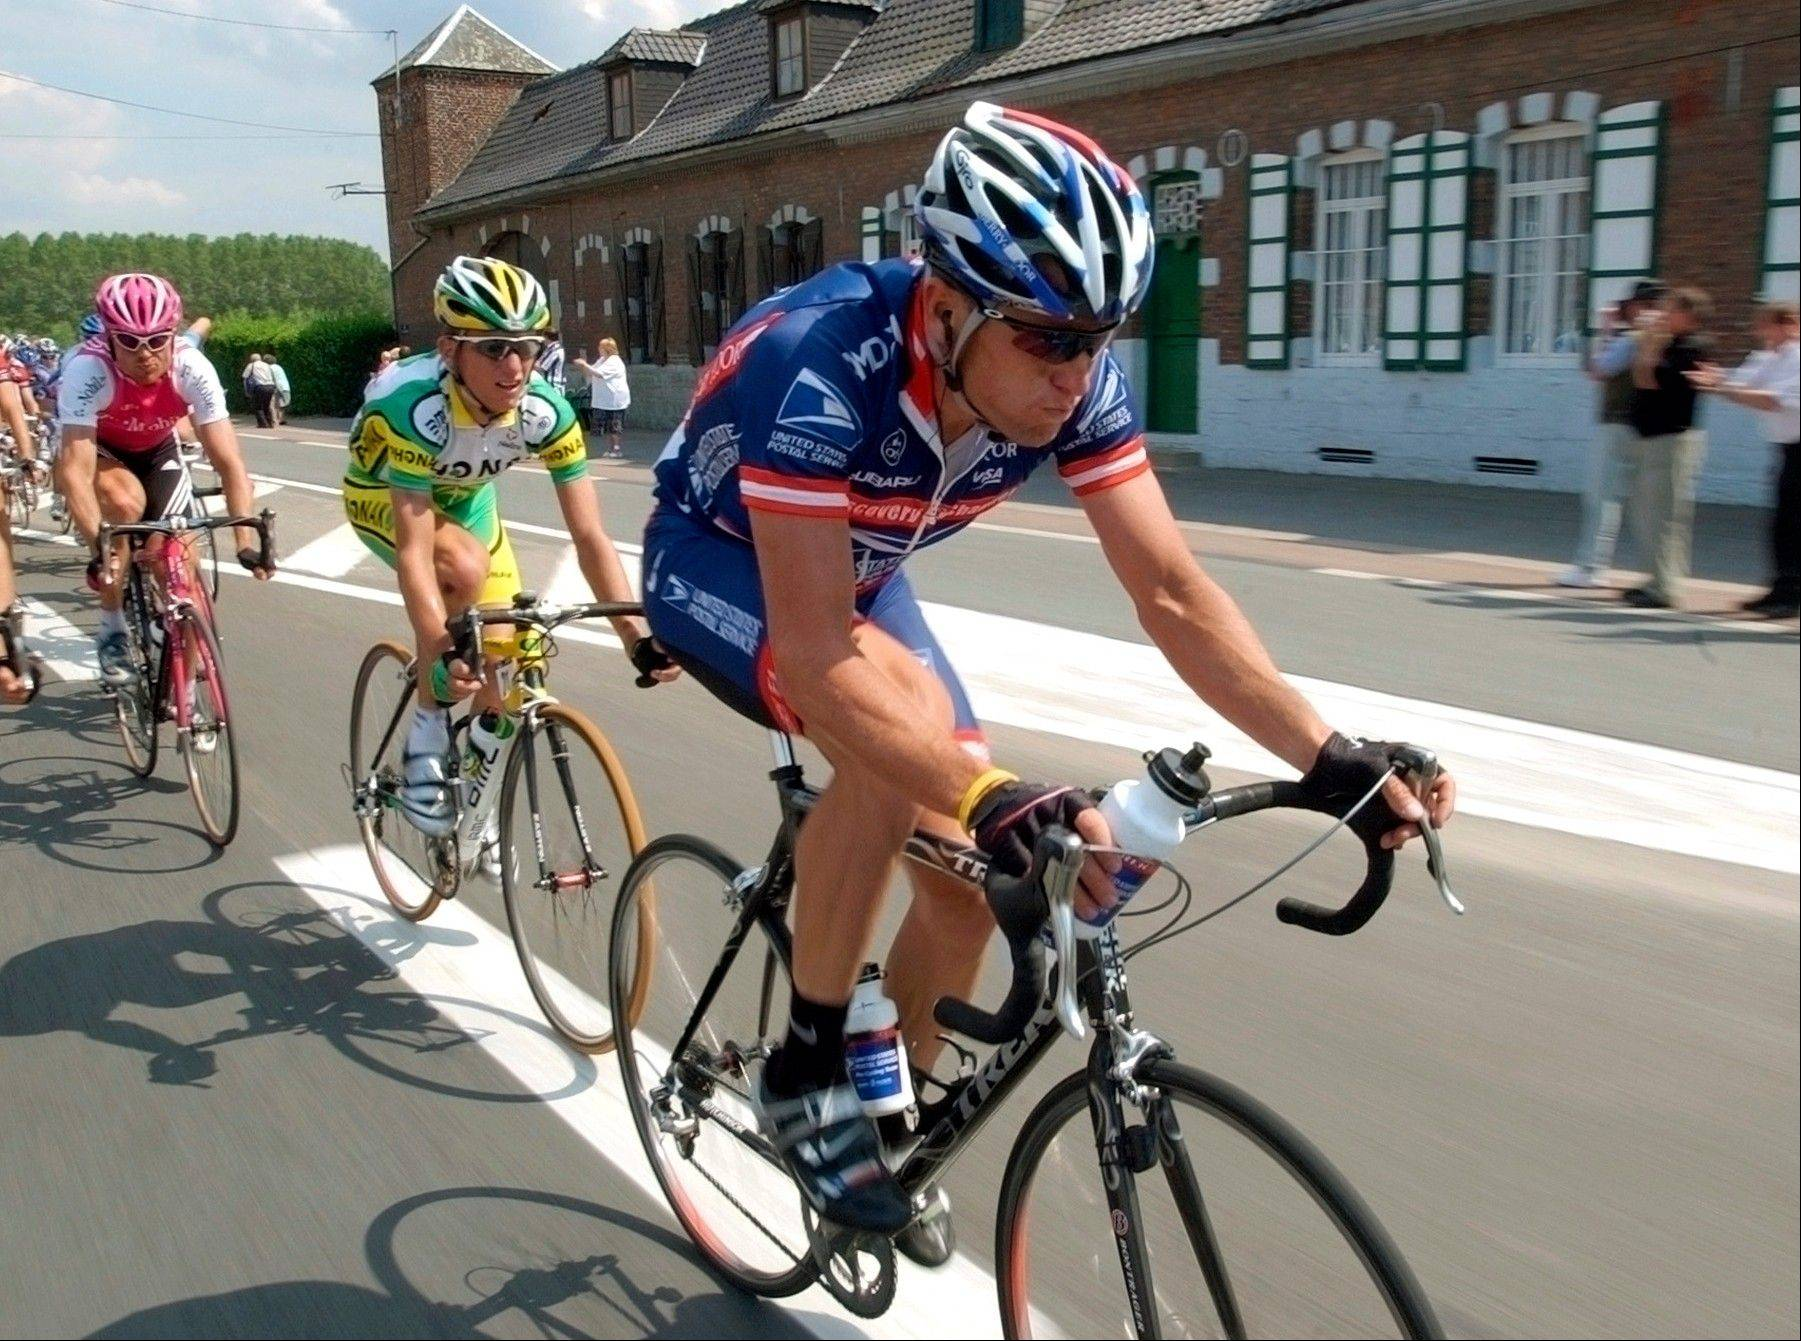 In this July 6, 2004, file photo, U.S. Postal Service's Lance Armstrong rides ahead of Team Phonak's Tyler Hamilton, center, and T-Mobile's Jan Ullrich, of Germany, during the third stage of the Tour de France cycling race. Former International Cycling Union president Hein Verbruggen defended the governing body's doping policy during the Lance Armstrong era, and said it acted appropriately when it informed riders about suspicious test results.